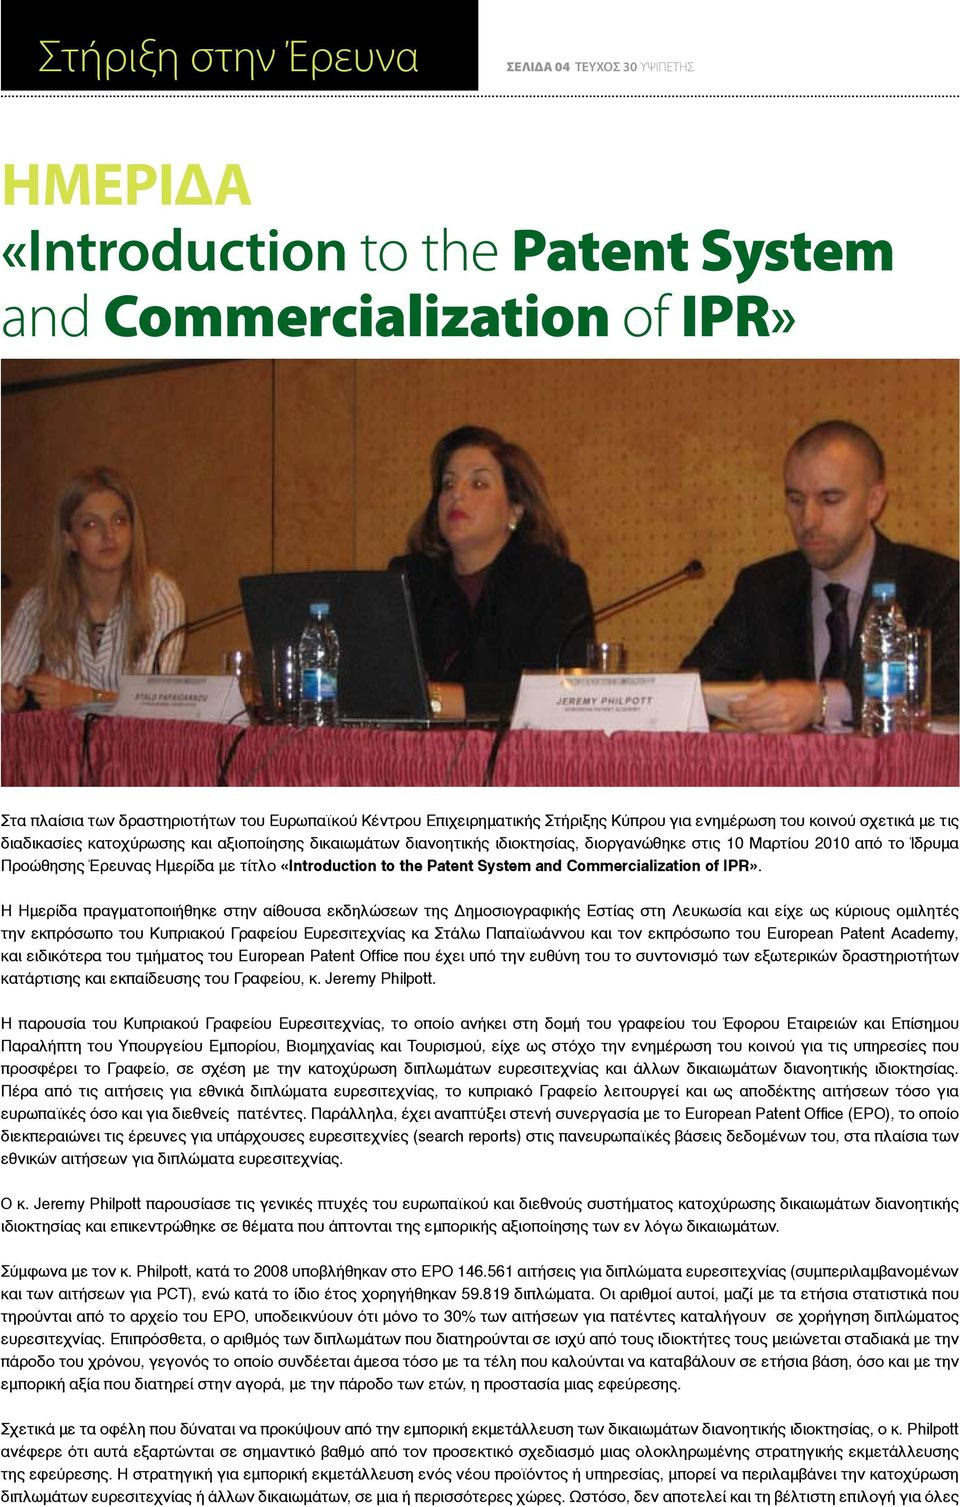 Ημερίδα με τίτλο «Introduction to the Patent System and Commercialization of IPR».